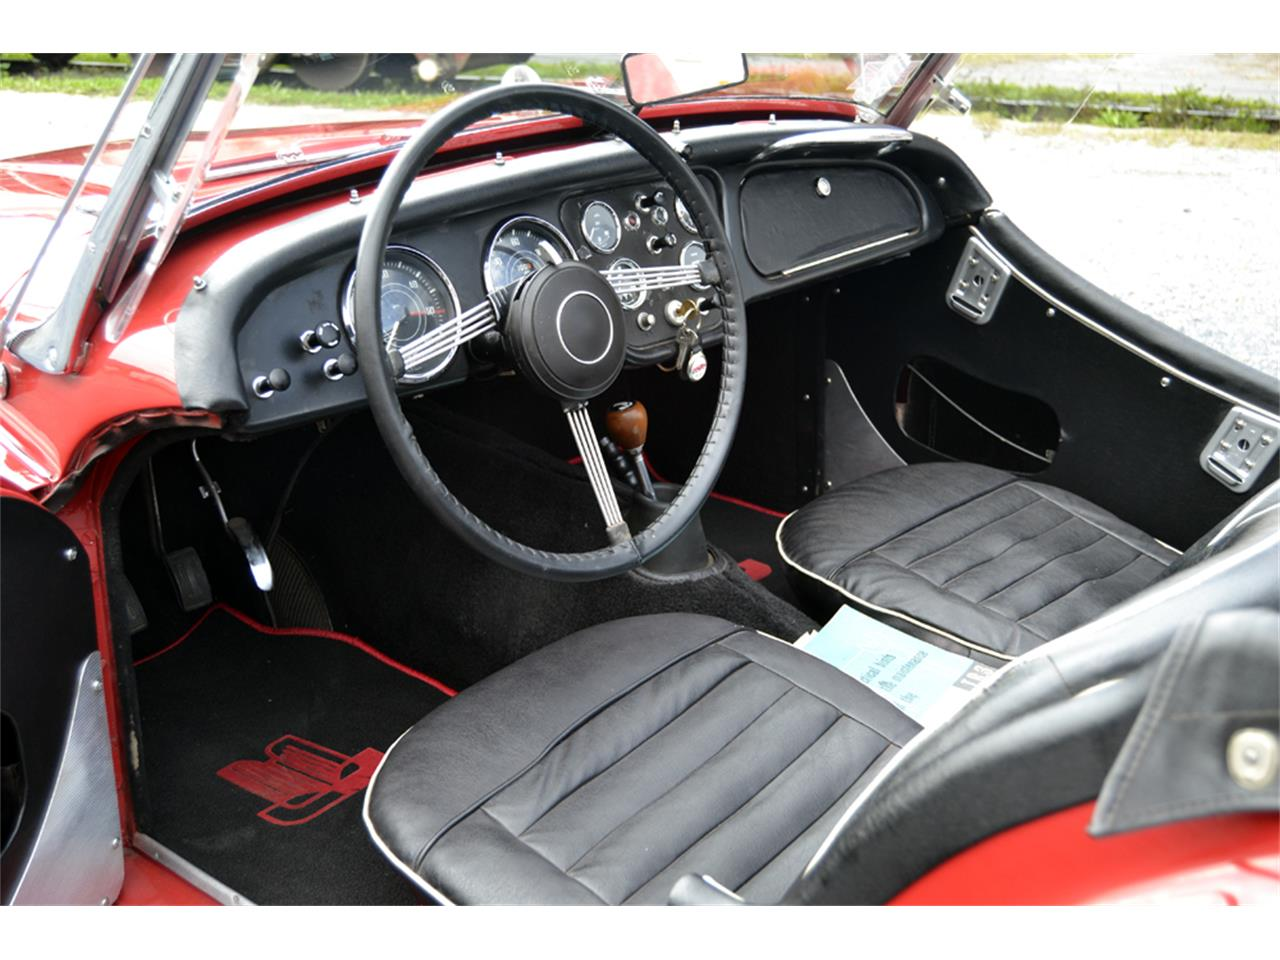 Large Picture of Classic '61 Triumph TR3A - $33,500.00 - OZYS